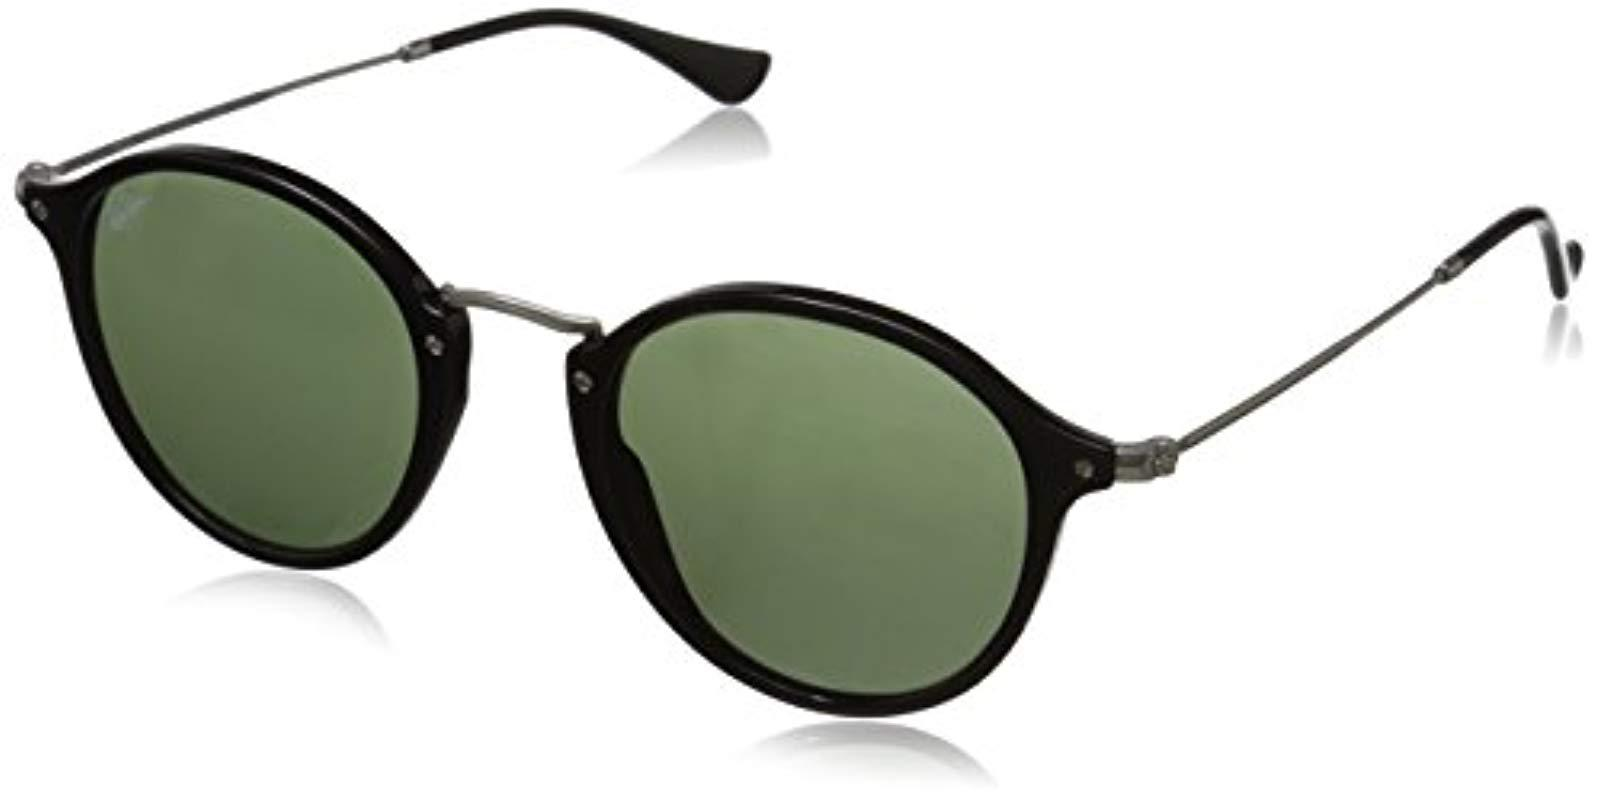 c9779e4901 Lyst - Ray-Ban 0rb2447 Round Sunglasses in Black for Men - Save 26%